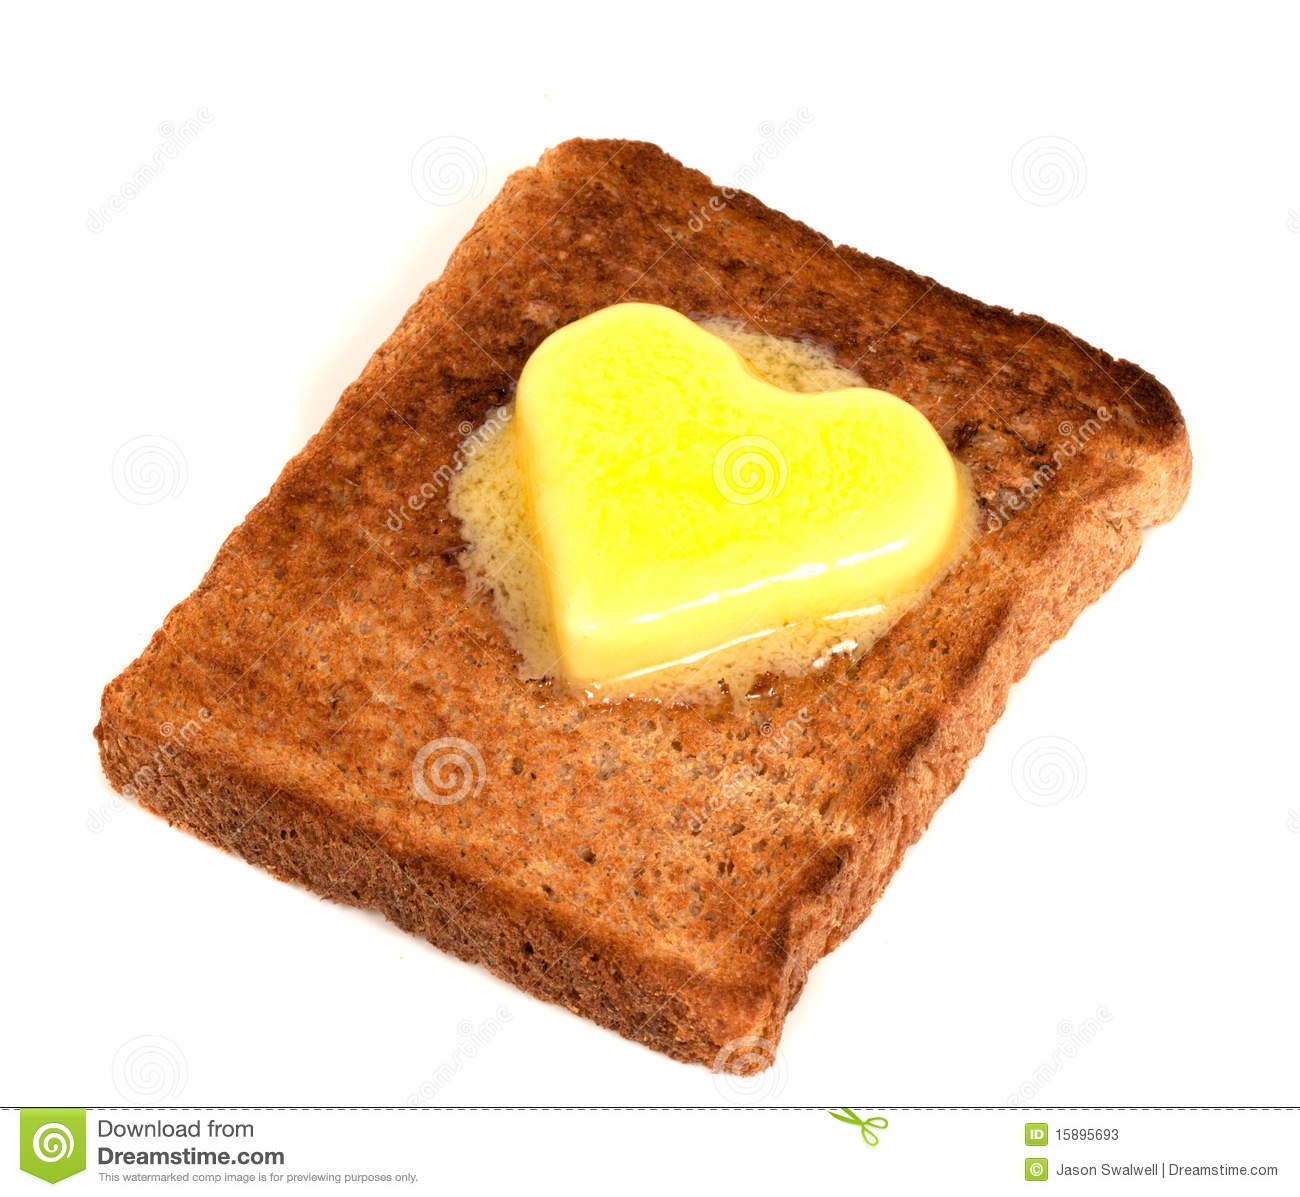 Melting Heart Shaped Butter on wholemeal Toast on white background.